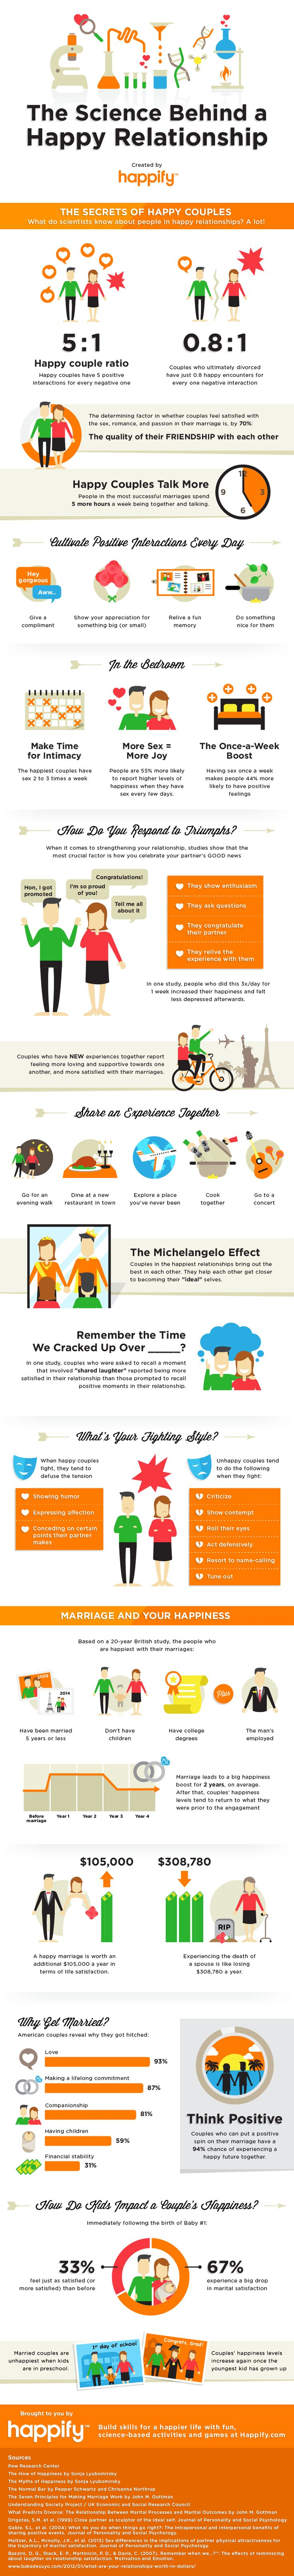 The Secrets Of Happy Couples (Infographic) - mindbodygreen.com